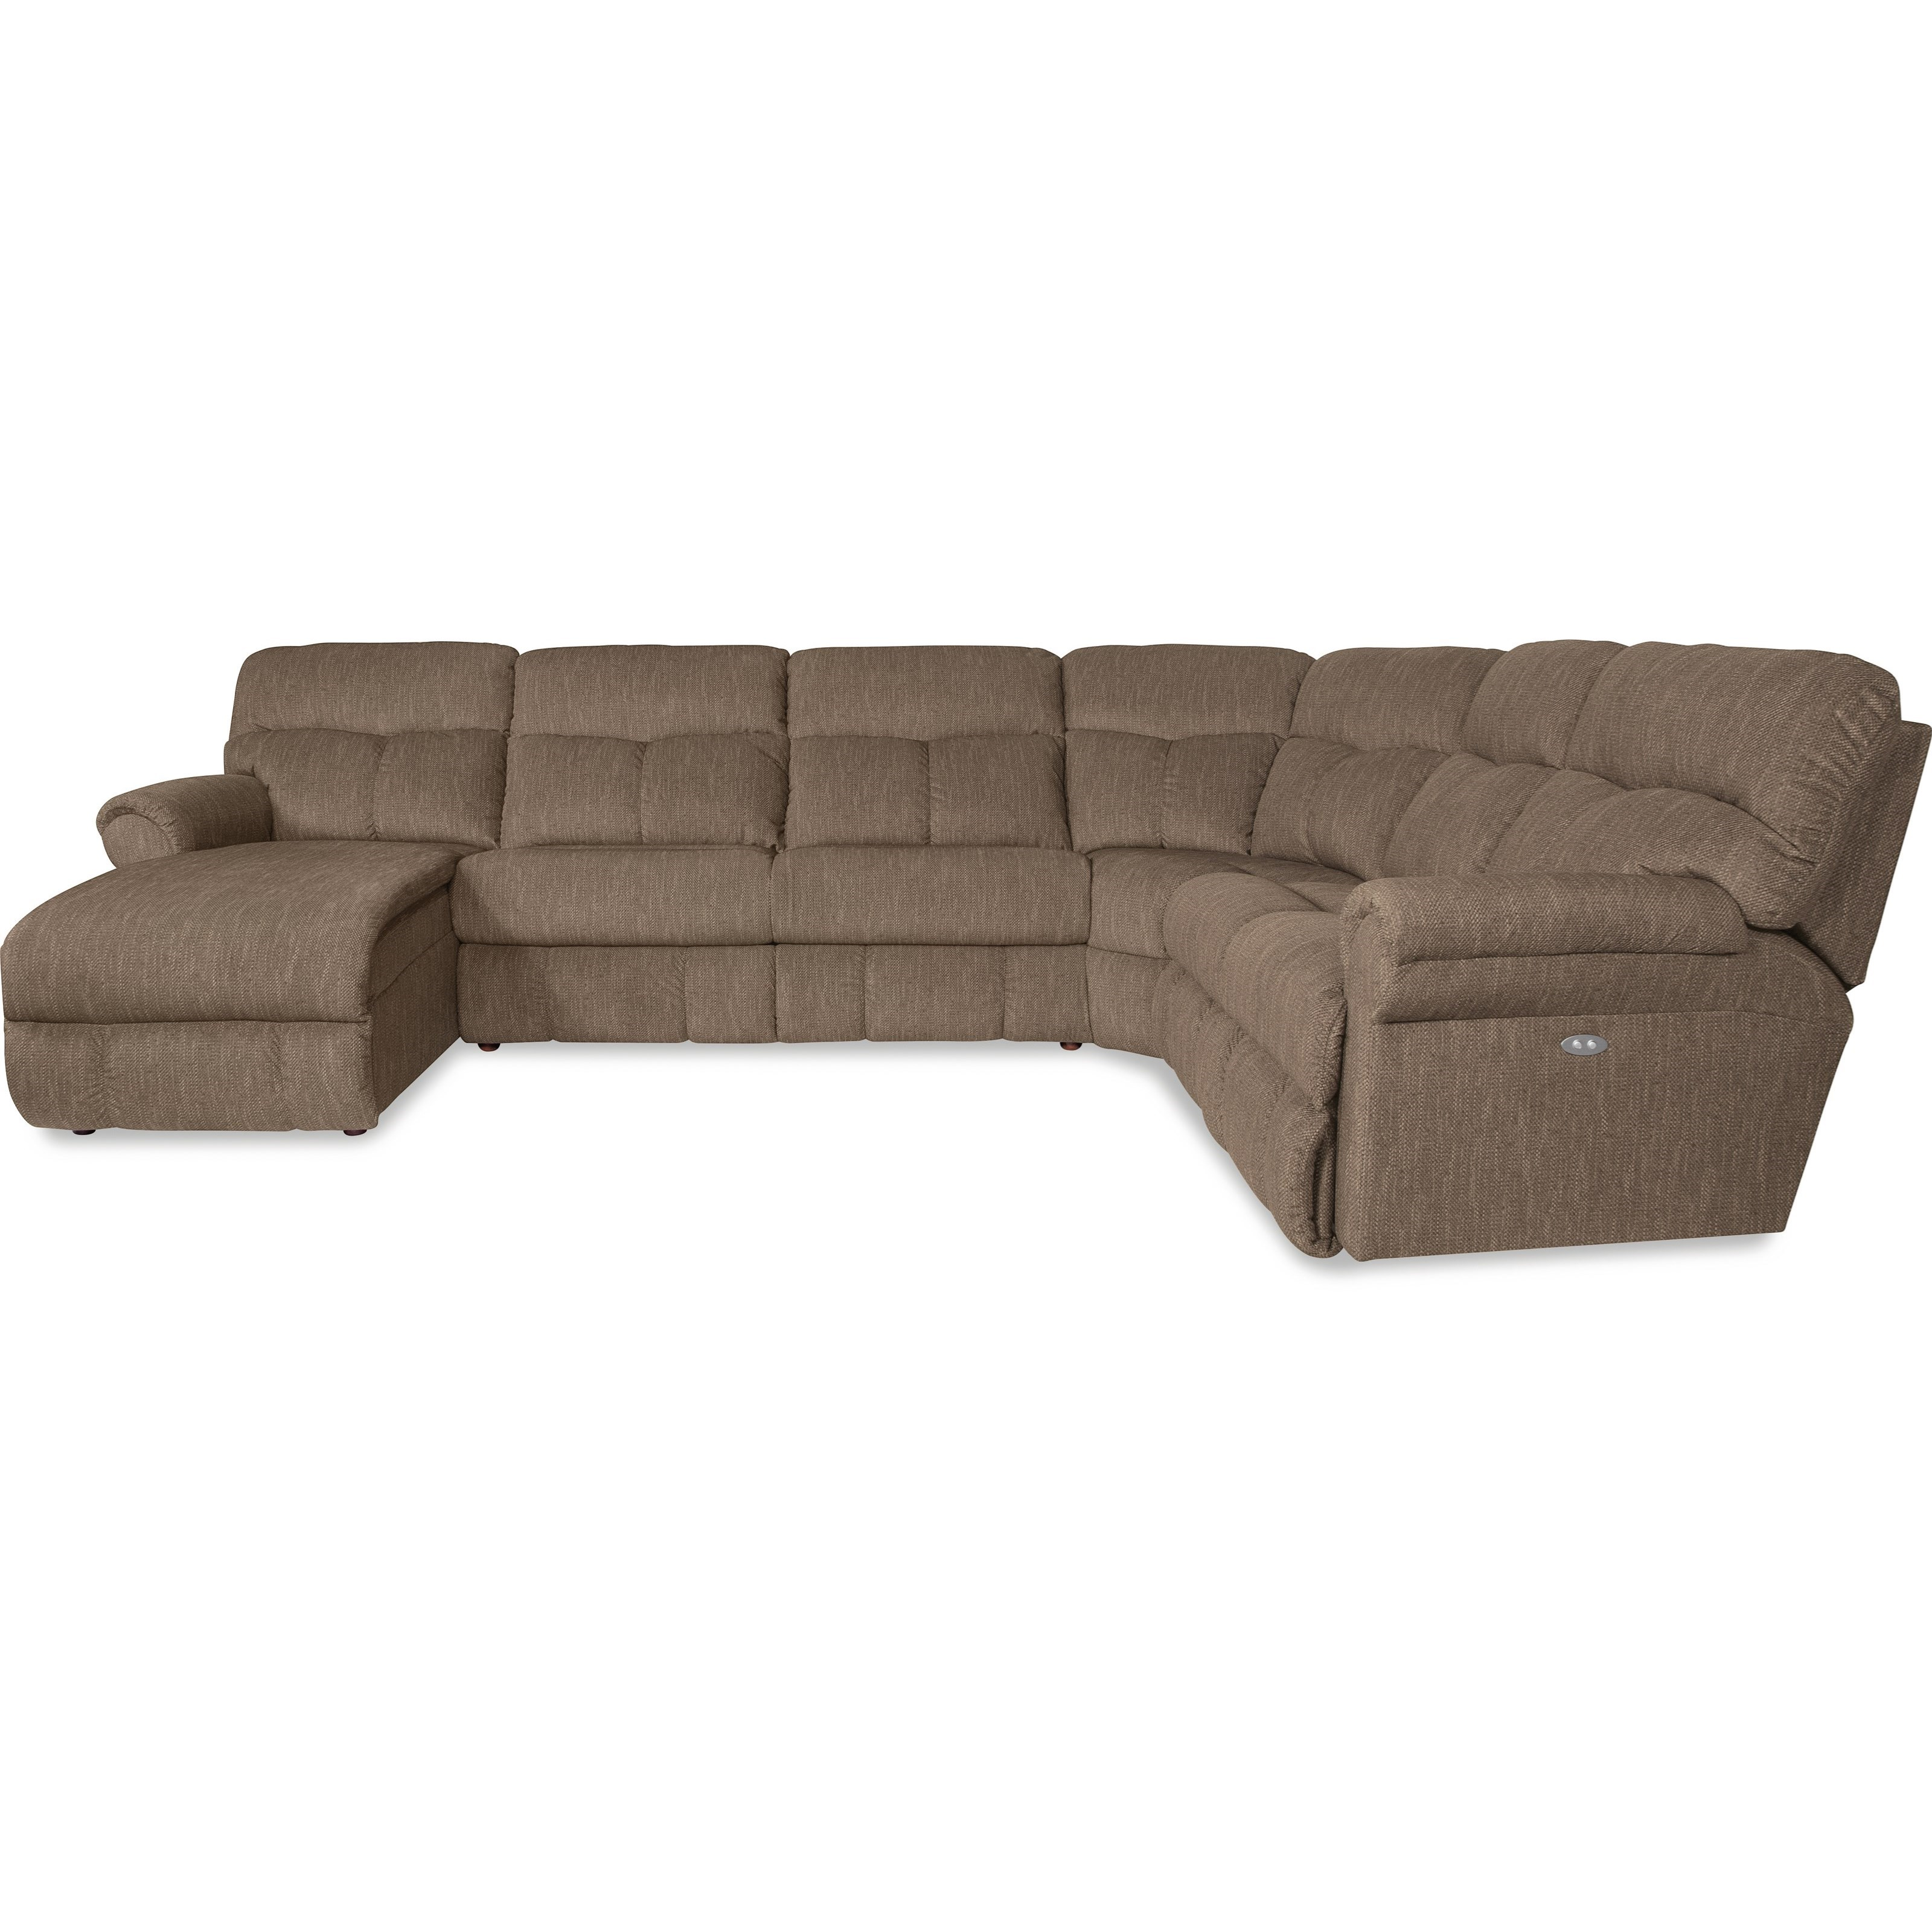 Casual four piece reclining sectional with laf reclining for 4 piece sectional sofa with chaise